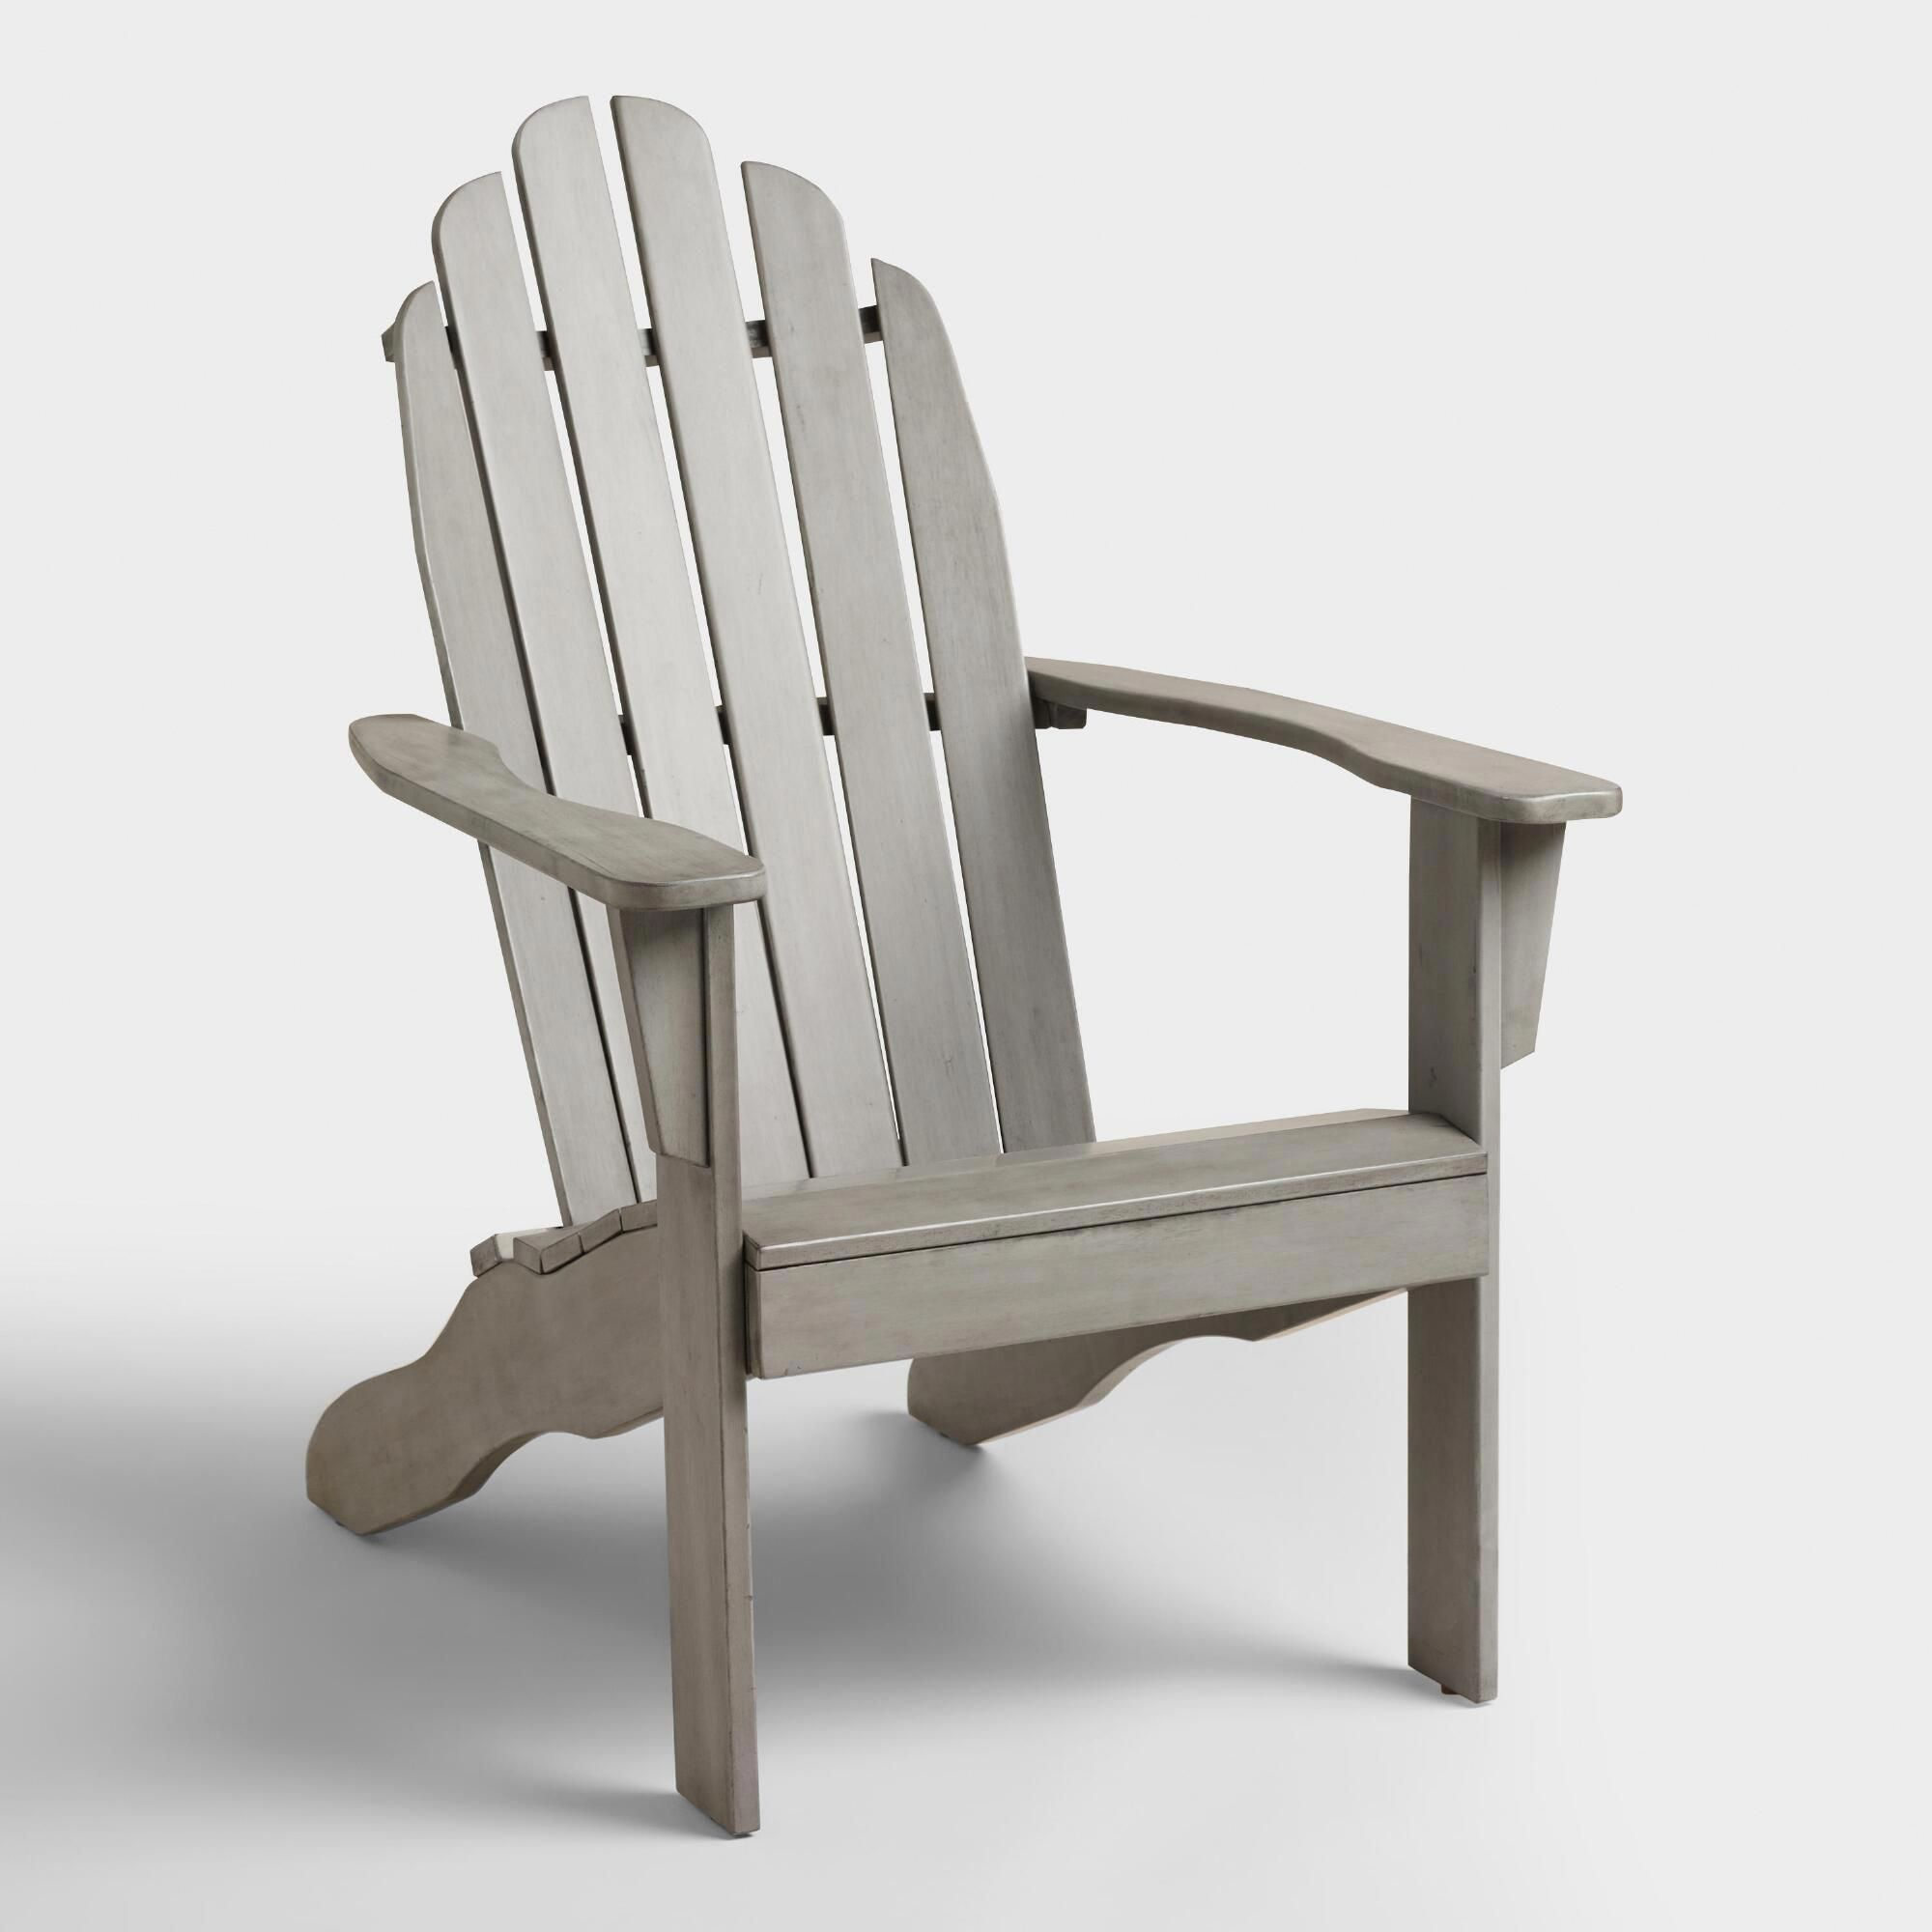 Gray wood adirondack outdoor patio chair by world market